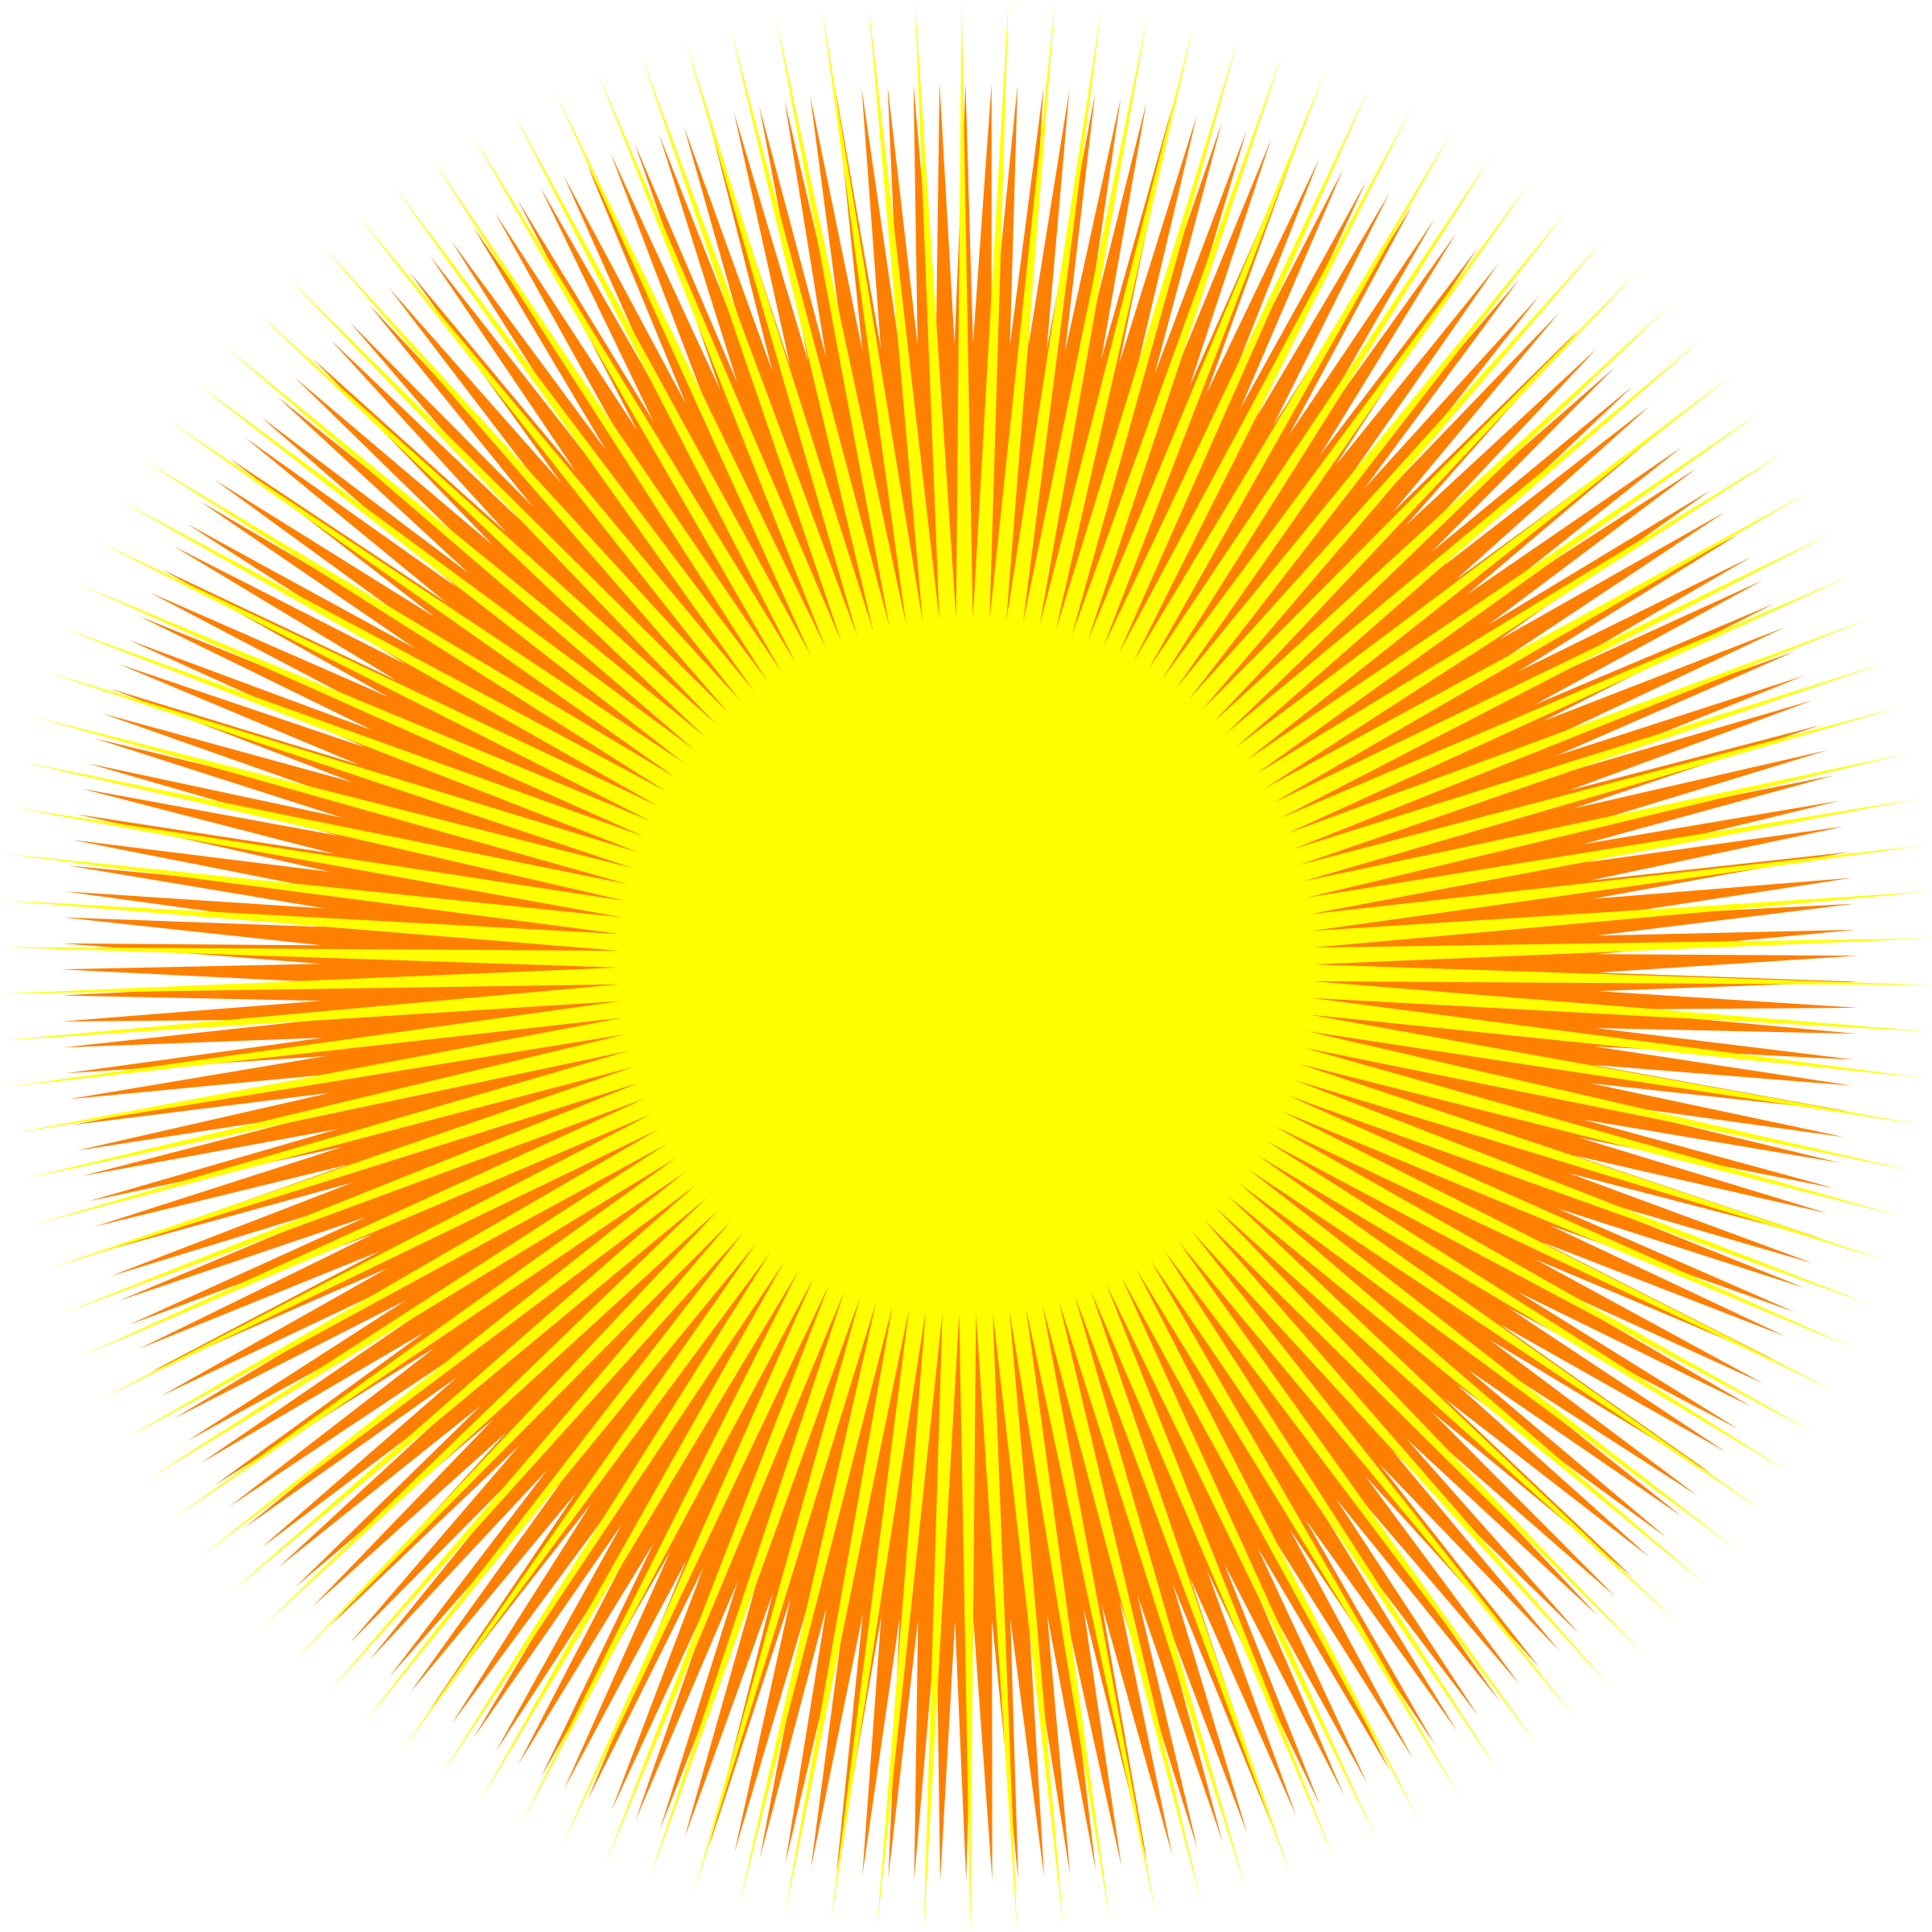 PNG The Sun - 60268